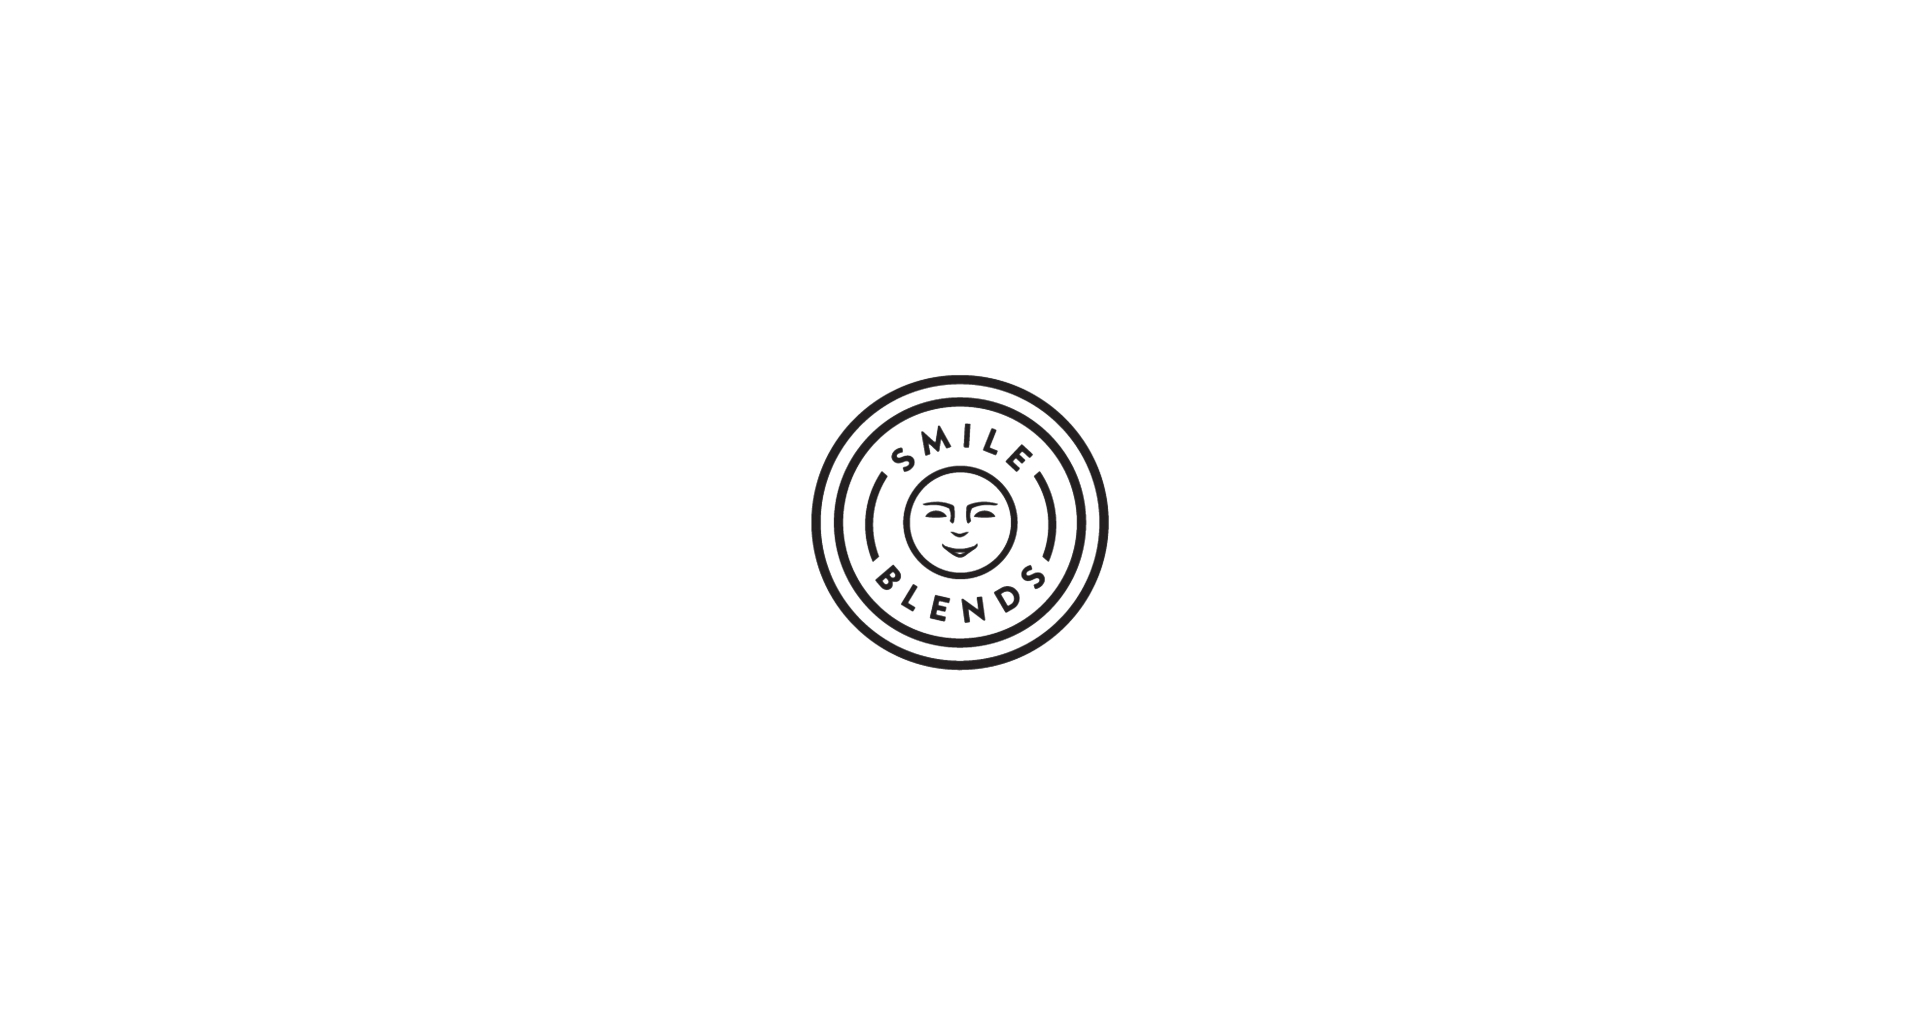 zeki-michael-logo-design-graphic-branding-identity-freelance-studio-design-smile-blends